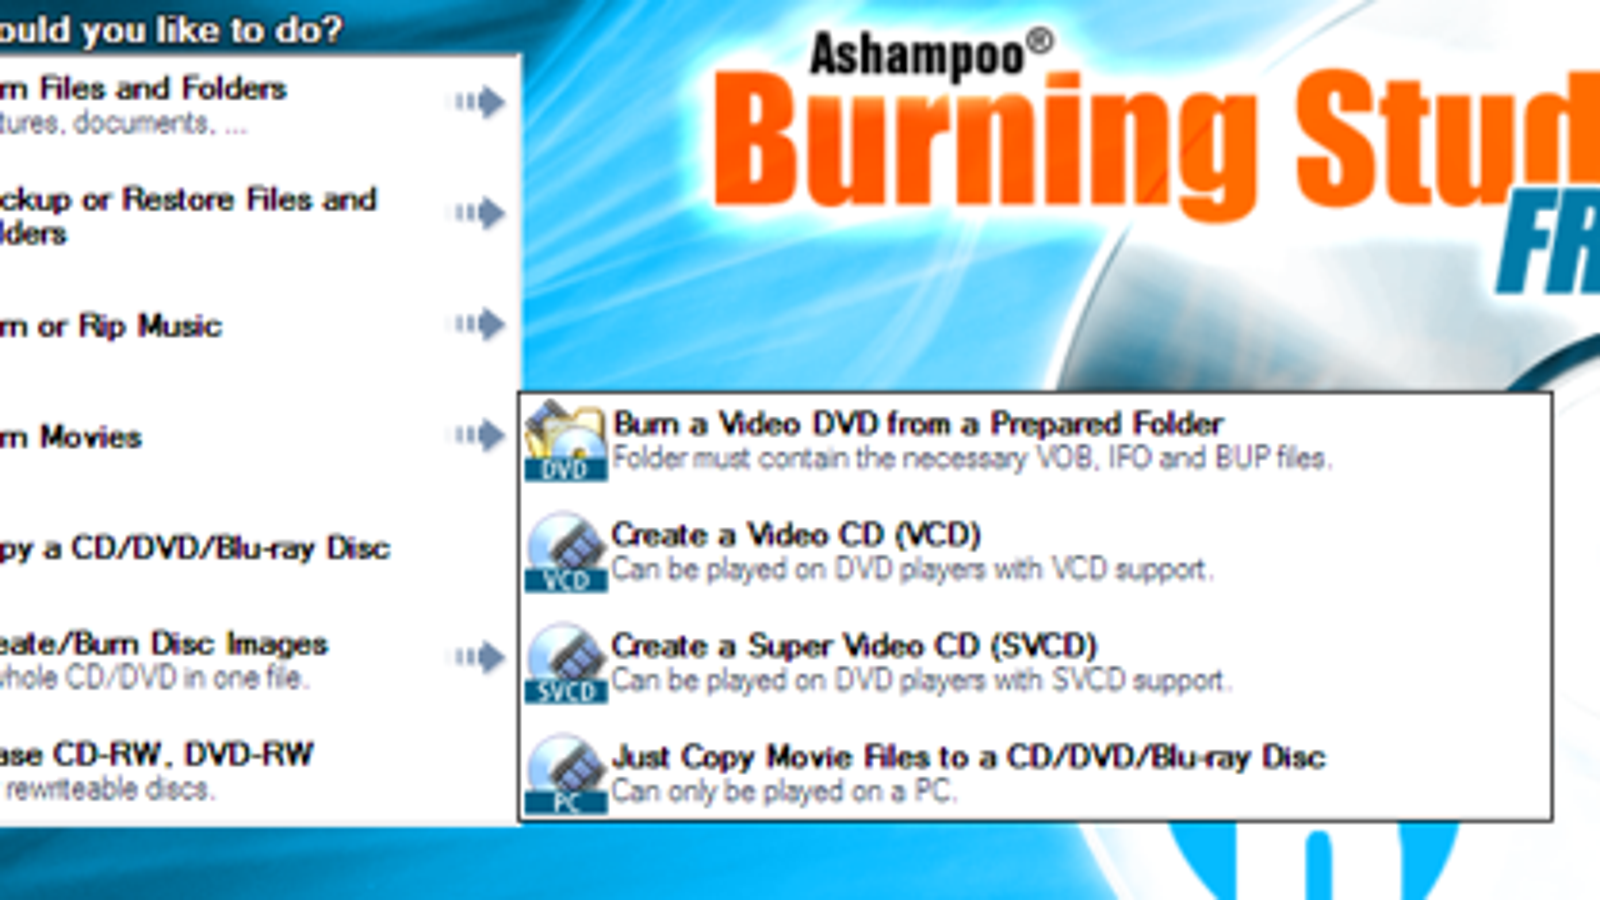 ashampoo burning studio freeware